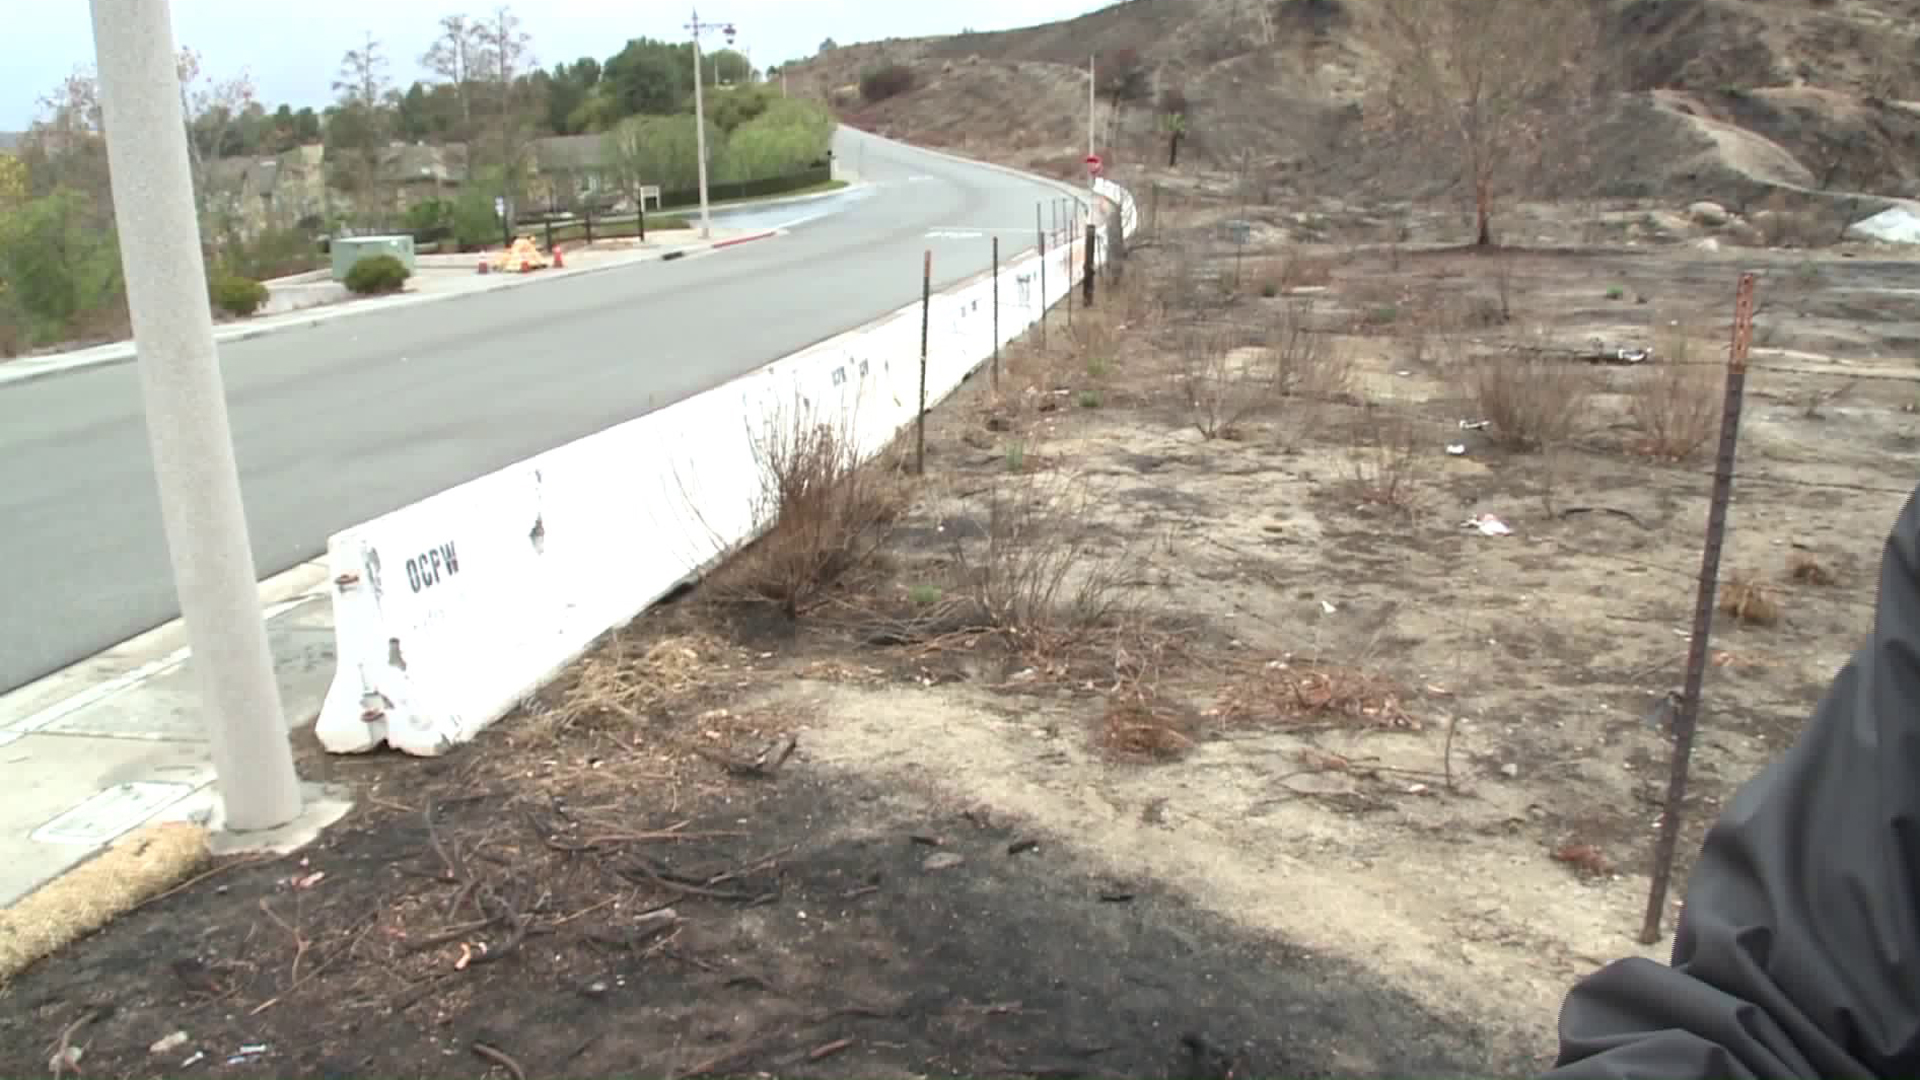 A K-rail was erected in Anaheim Hills on Jan. 9, 2018, to stop mudslides from the Canyon Fire 2 burn area, but flowing debris did not materialize. (Credit: KTLA)